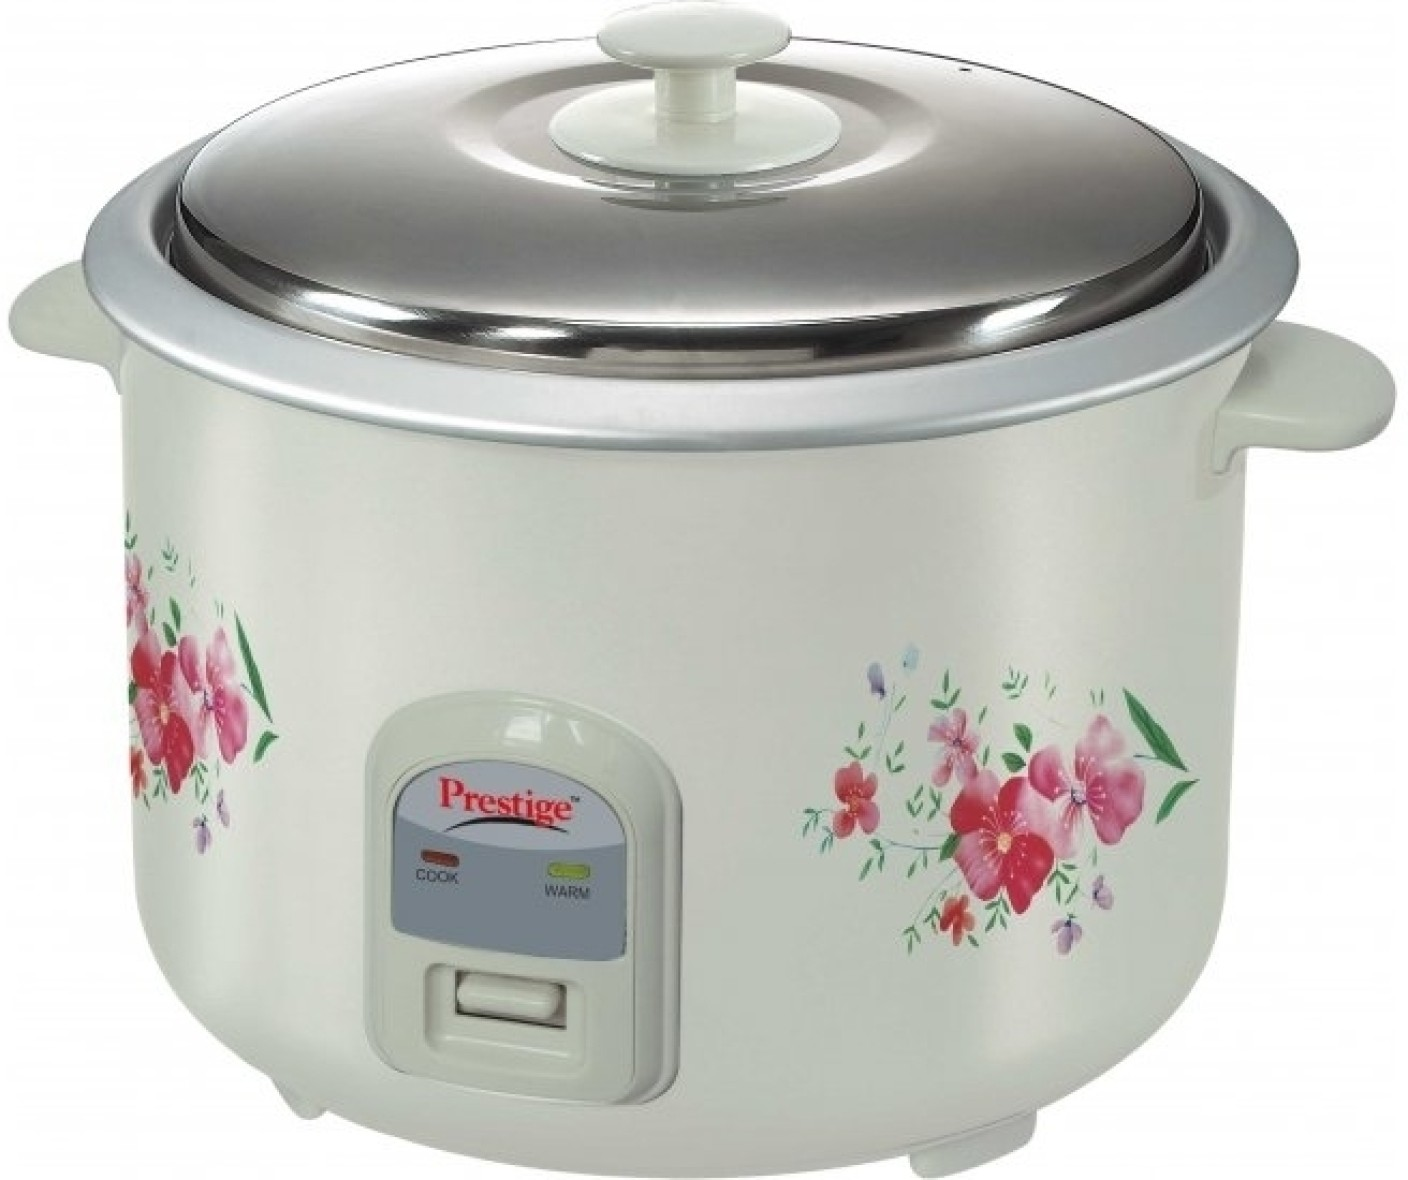 Prestige PRWO 2.8-2 Electric Rice Cooker with Steaming Feature ...